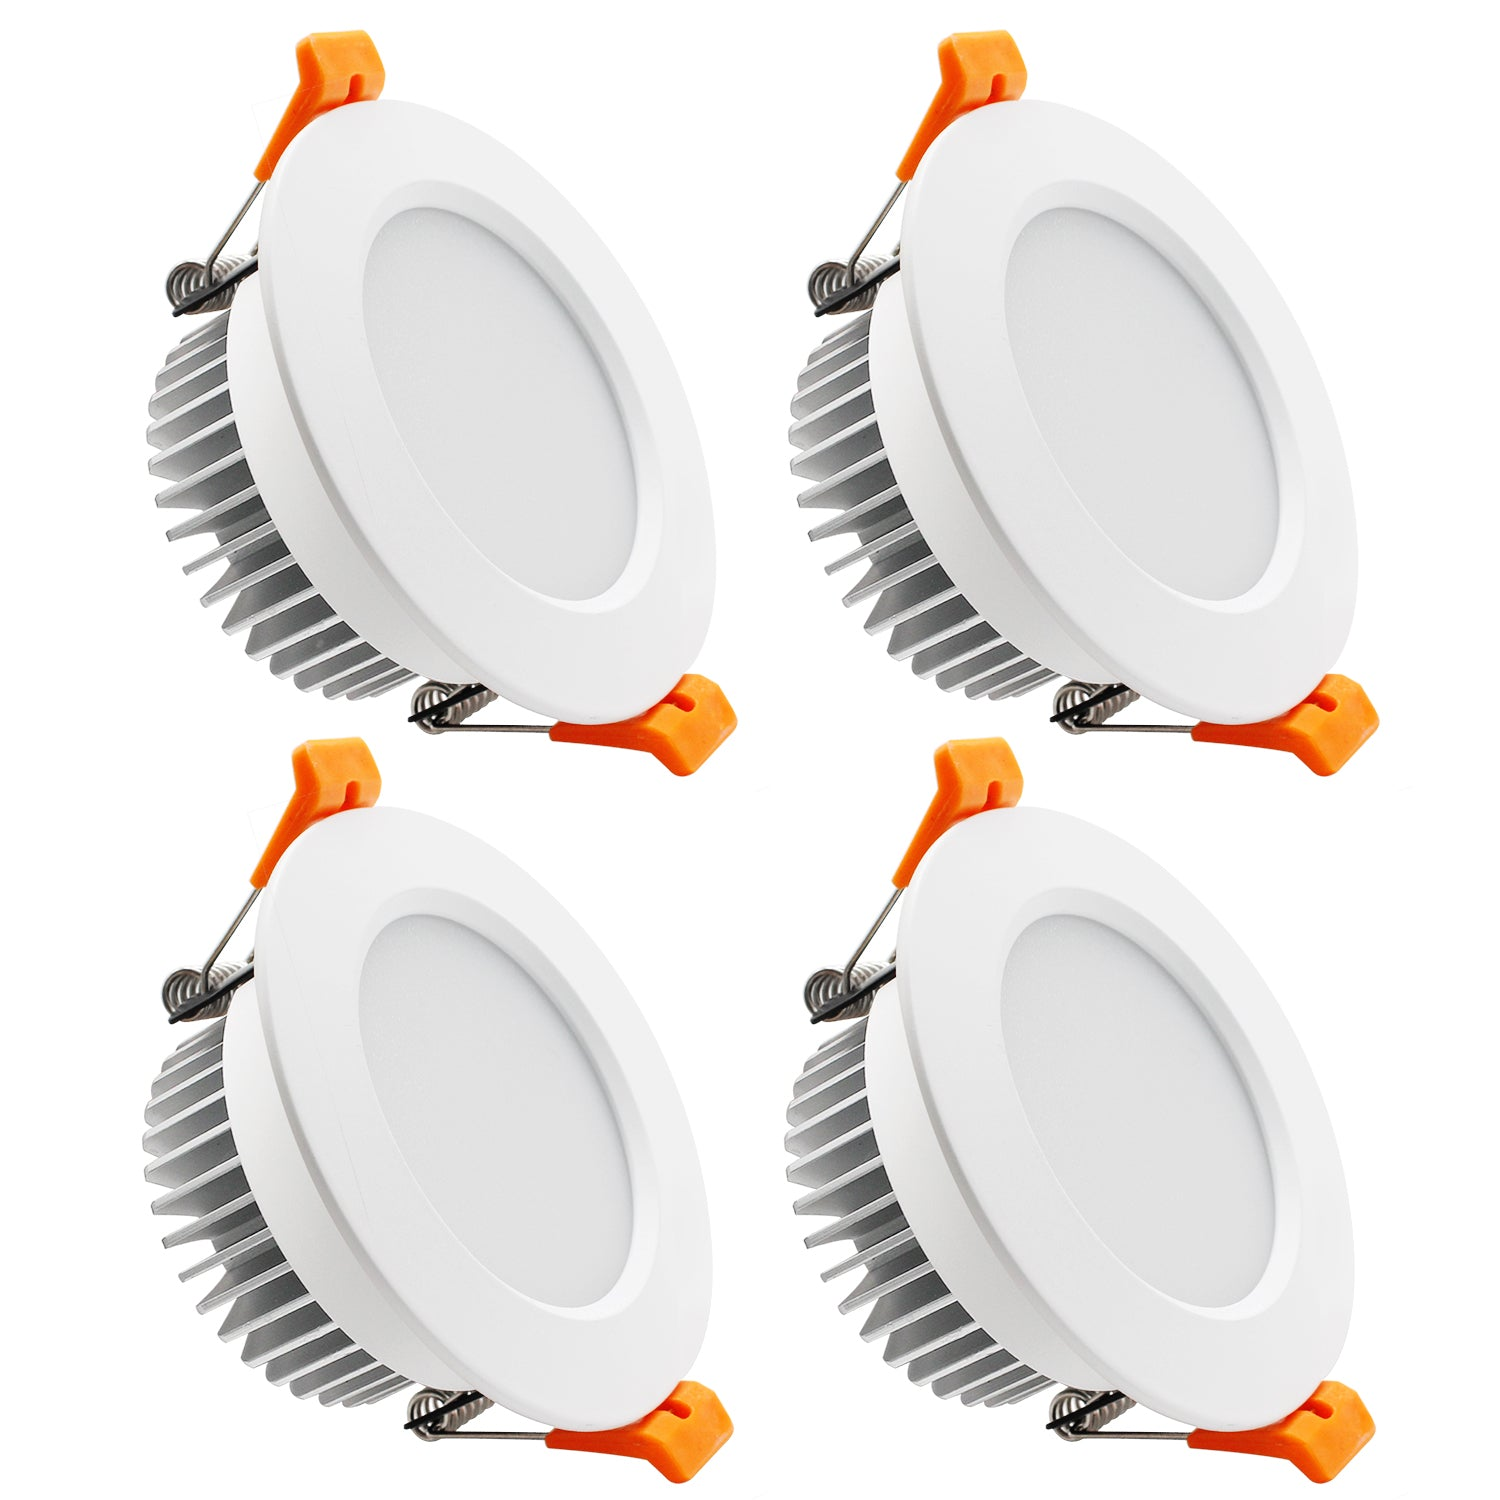 4pack 3 5 Inch Led Recessed Lighting Dimmable Downlight 7w 55w Halo Ygs Tech